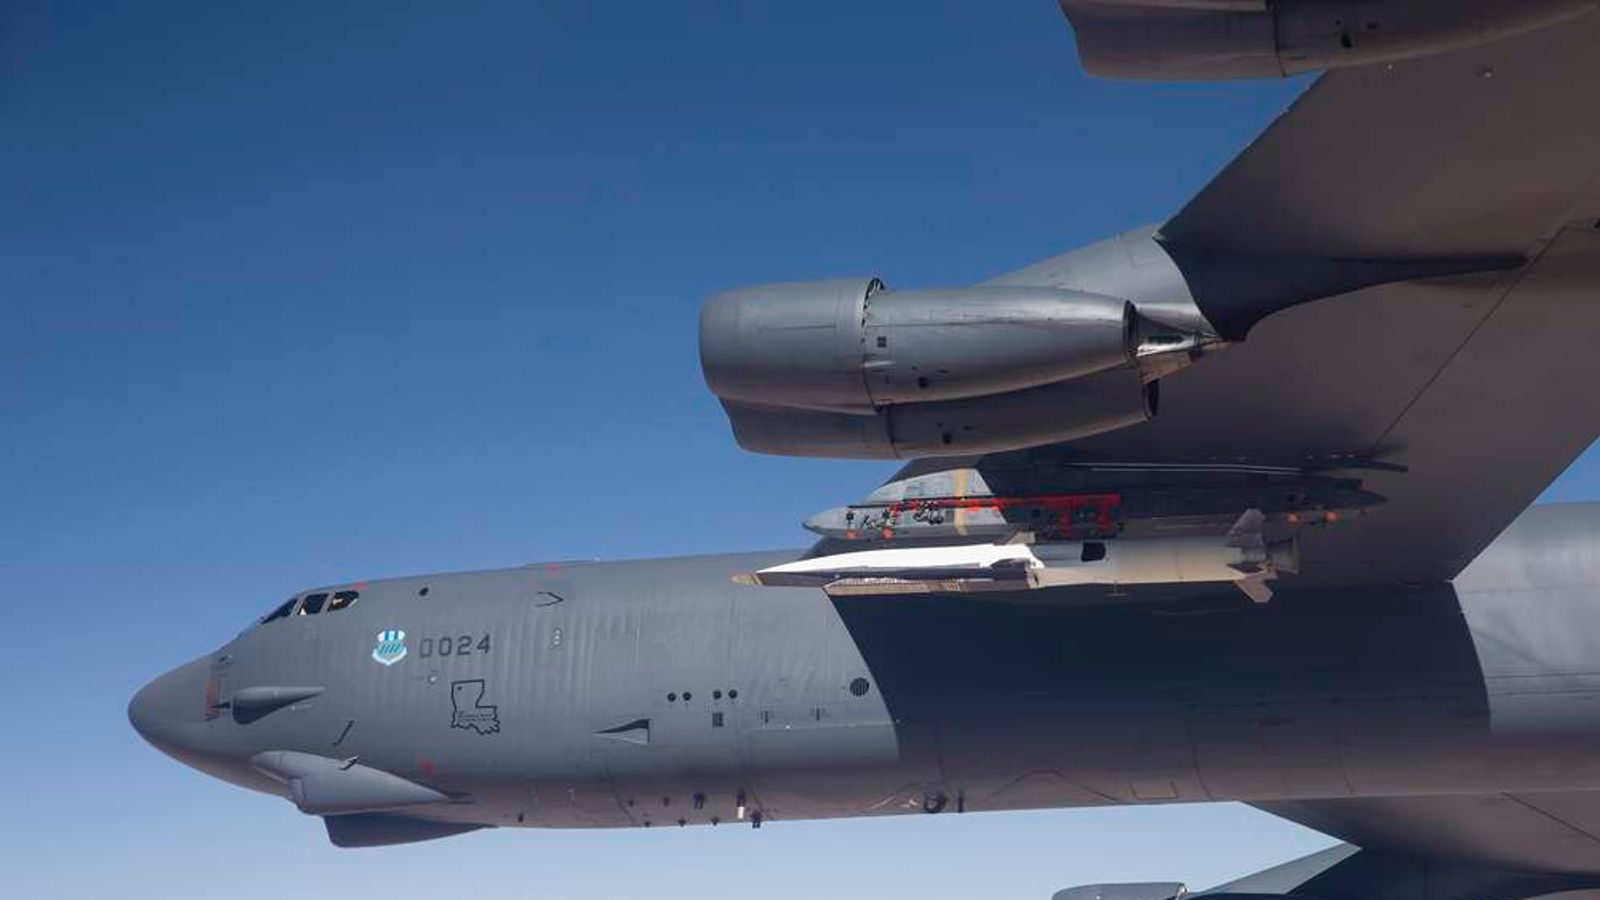 A U.S. Air Force B-52 carries the X-51 Hypersonic Vehicle out to the range for a launch test from Edwards AFB